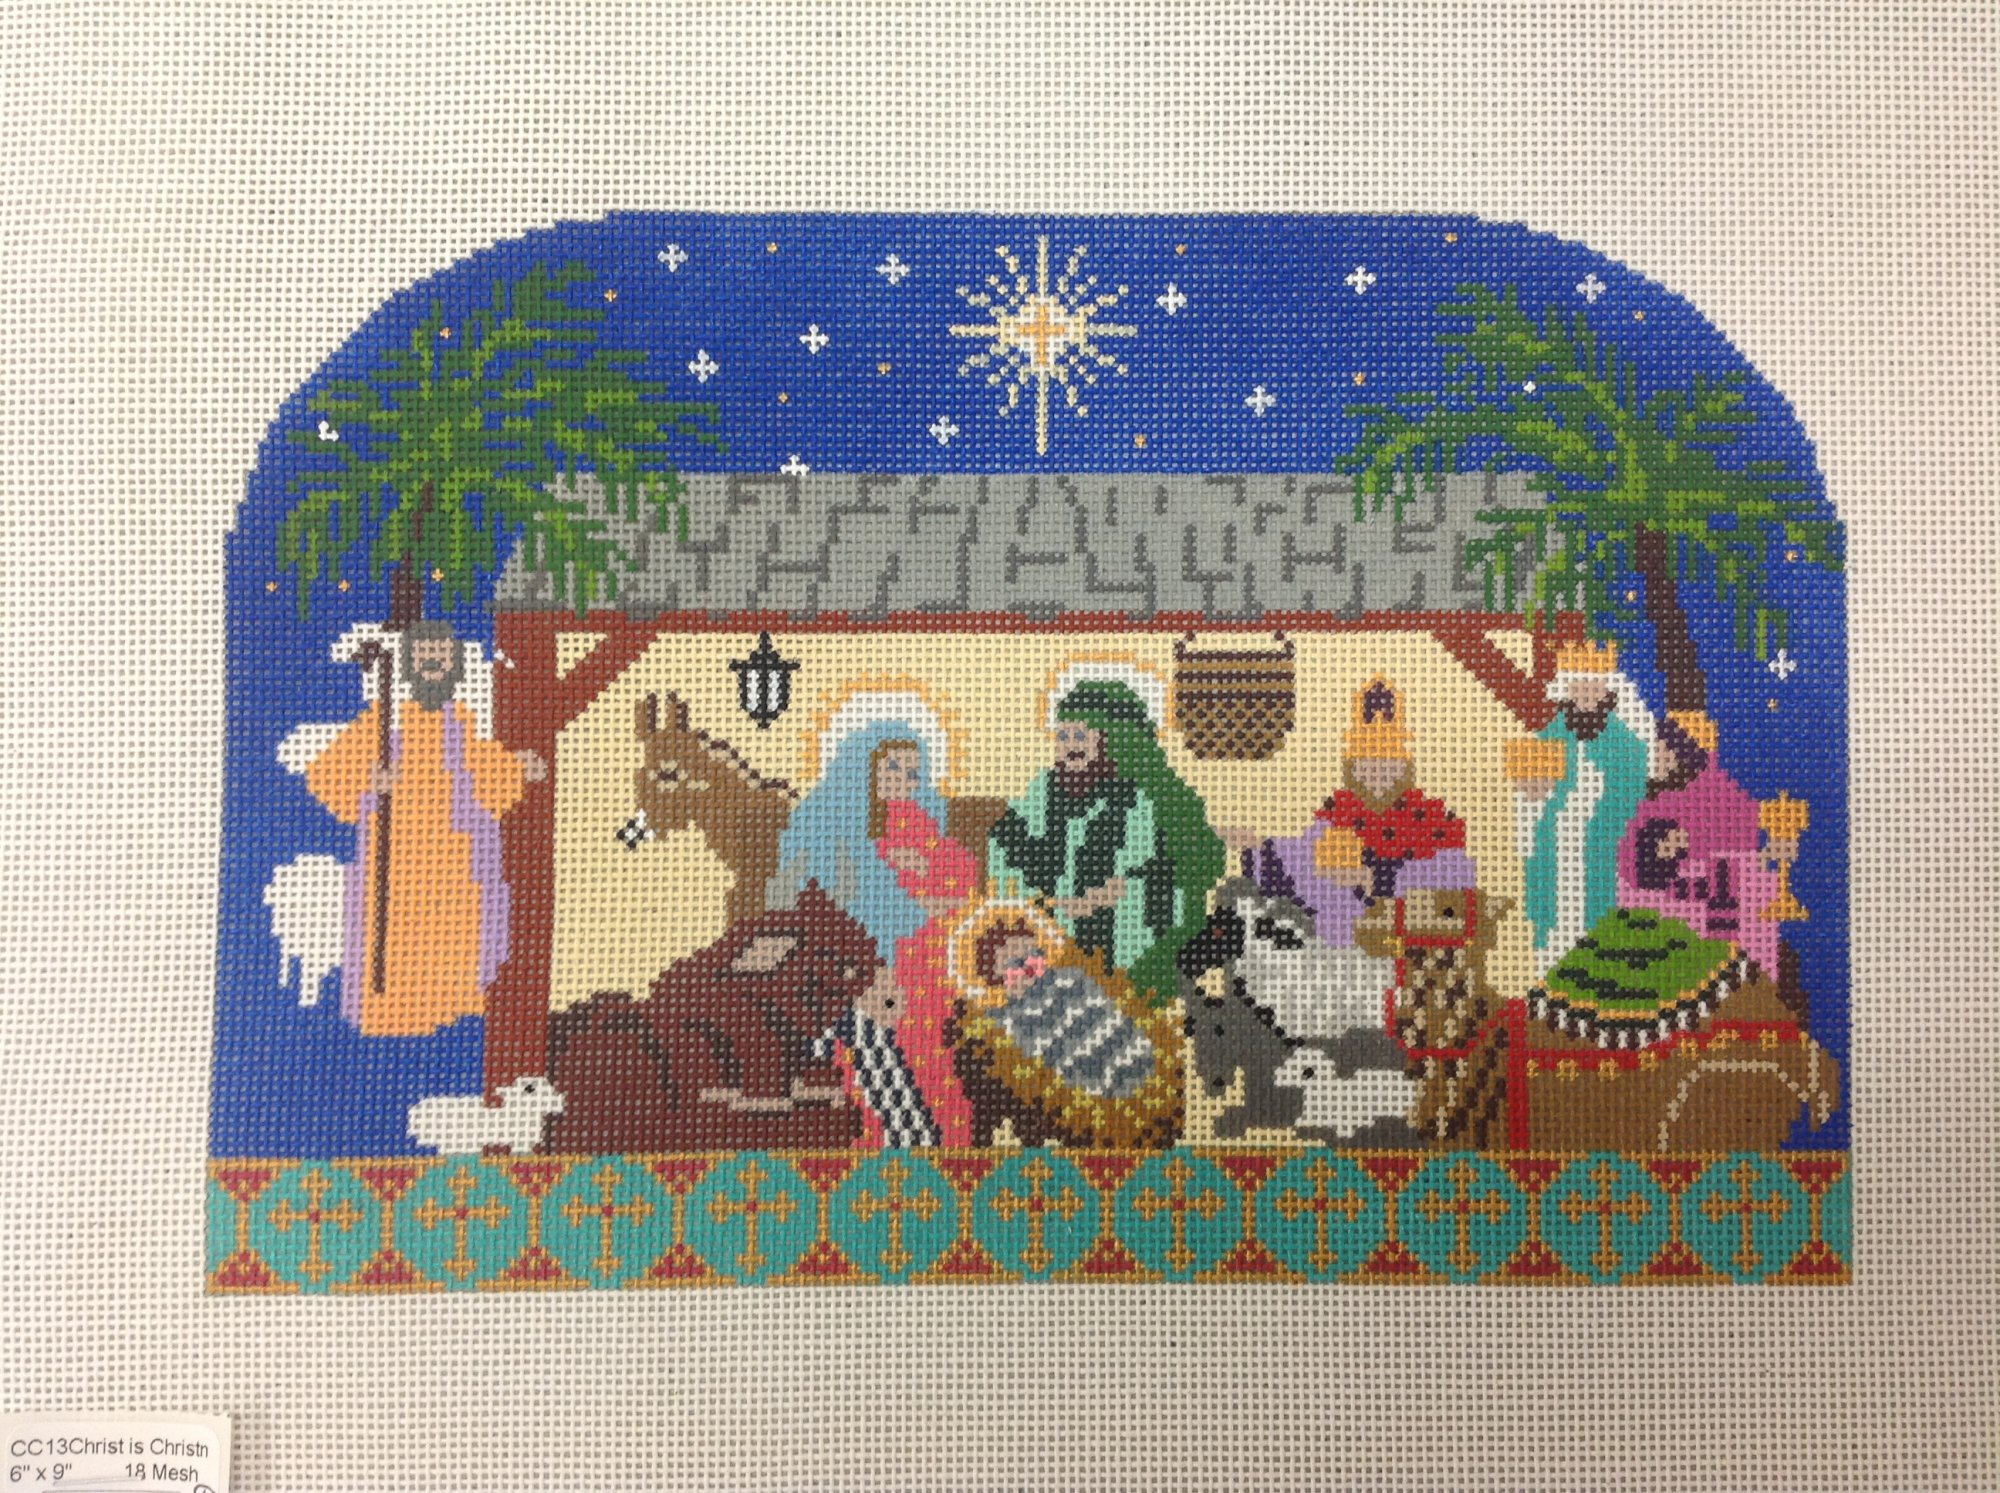 Christ is christmas nativity w stitch guide